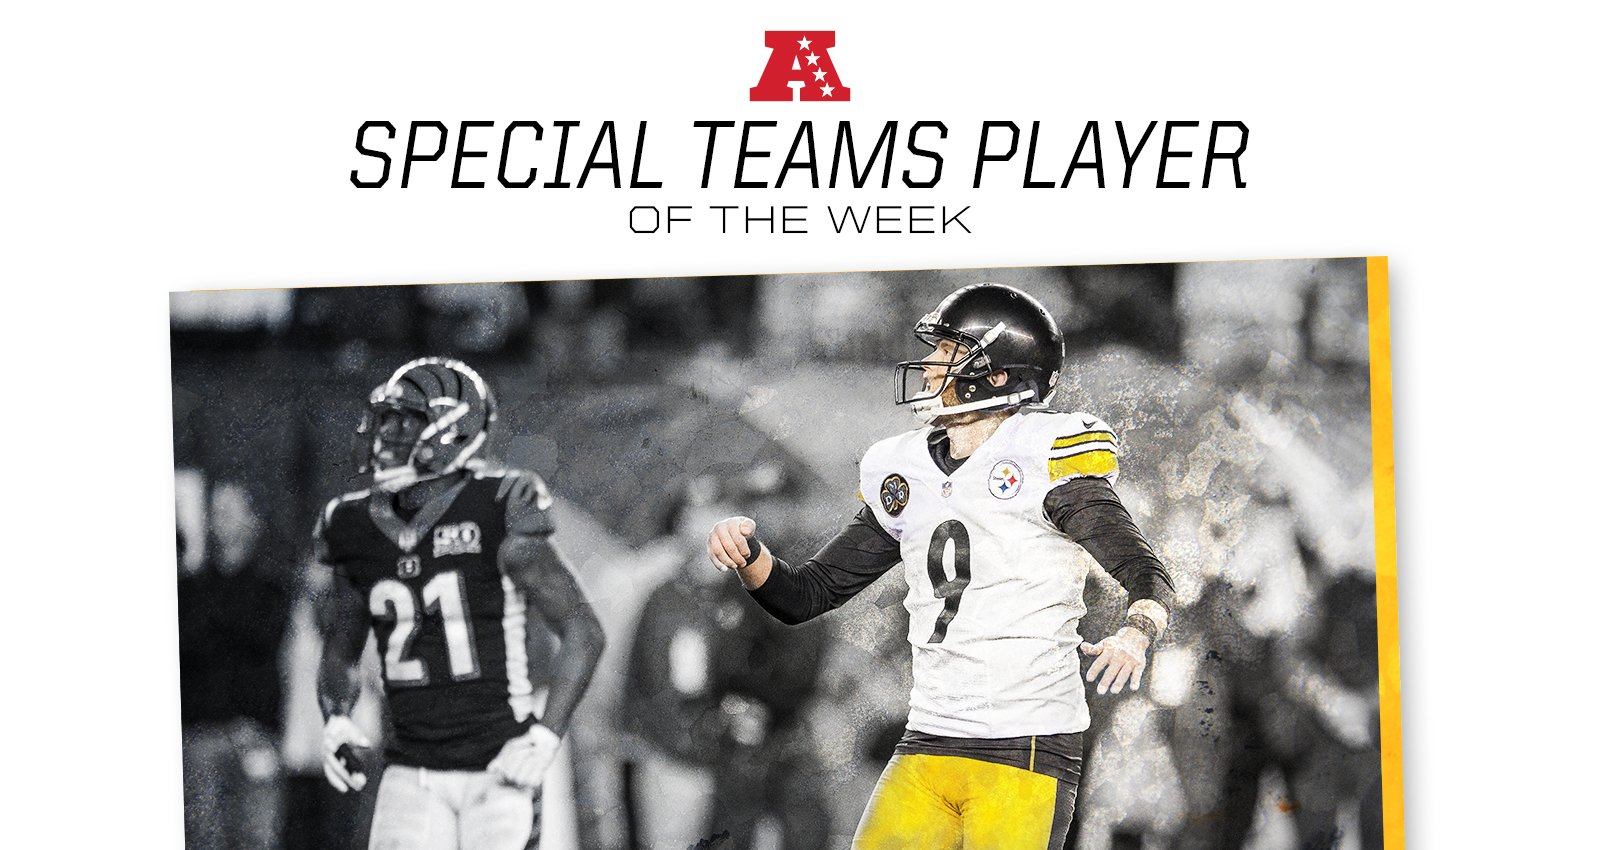 Chris Boswell has been named AFC Special Teams Player of the Week.  MORE: https://t.co/Odre1i43ET https://t.co/LN4gDXupi3